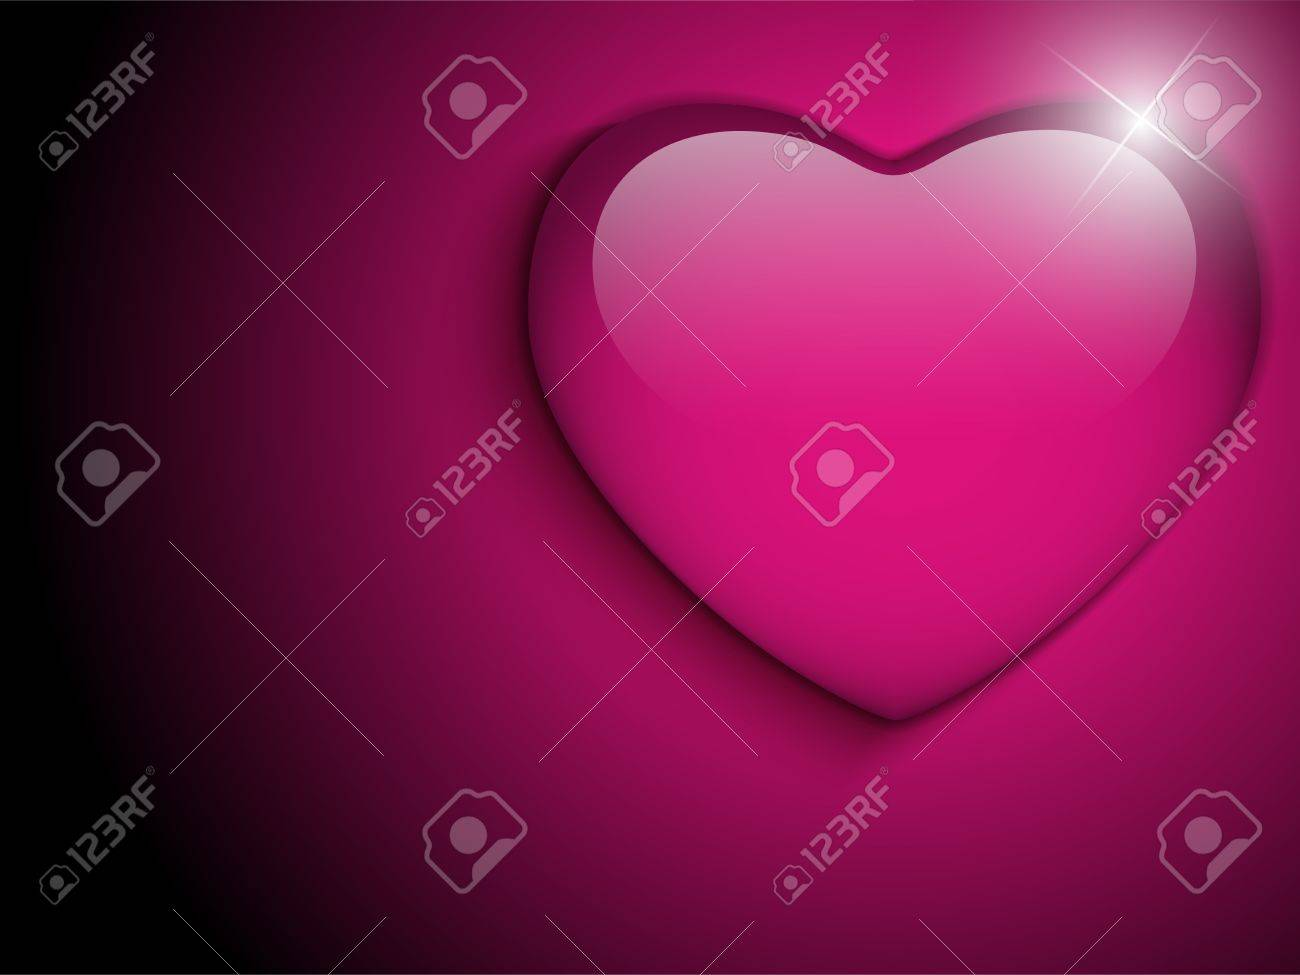 Vector - Glass Pink Glossy Heart Stock Vector - 17302921